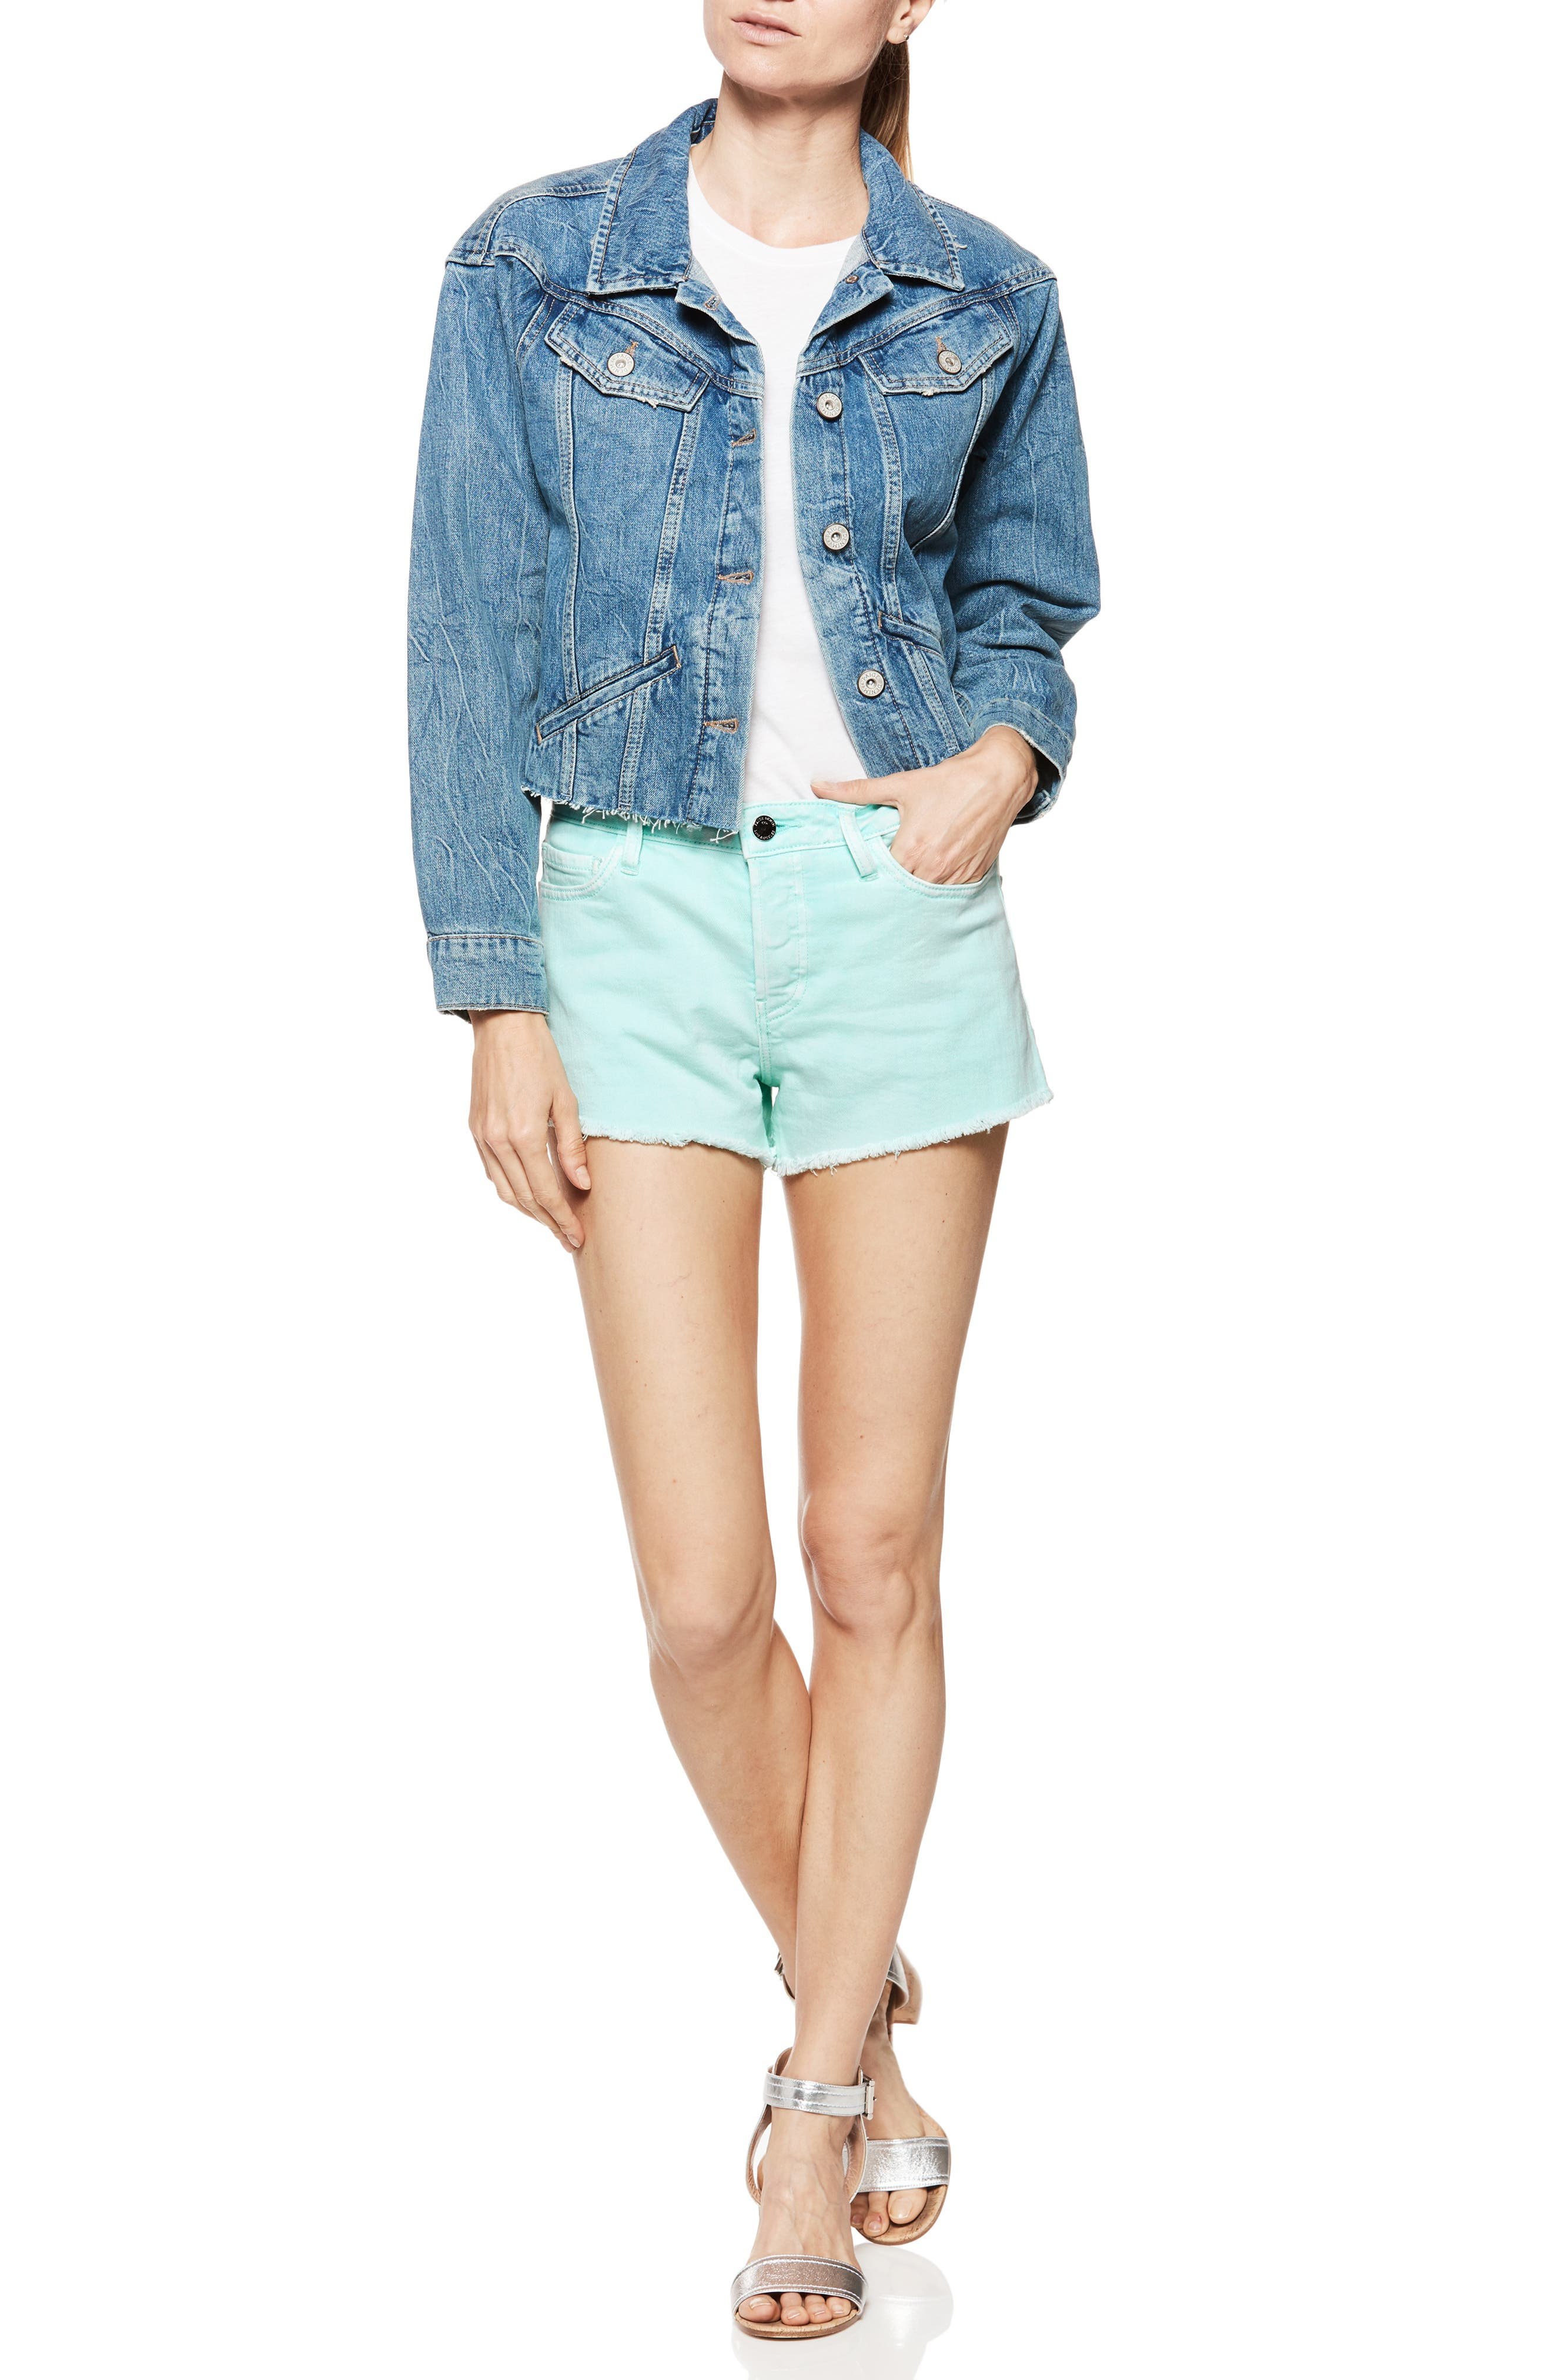 Emmit Relaxed Denim Shorts,                             Alternate thumbnail 5, color,                             430